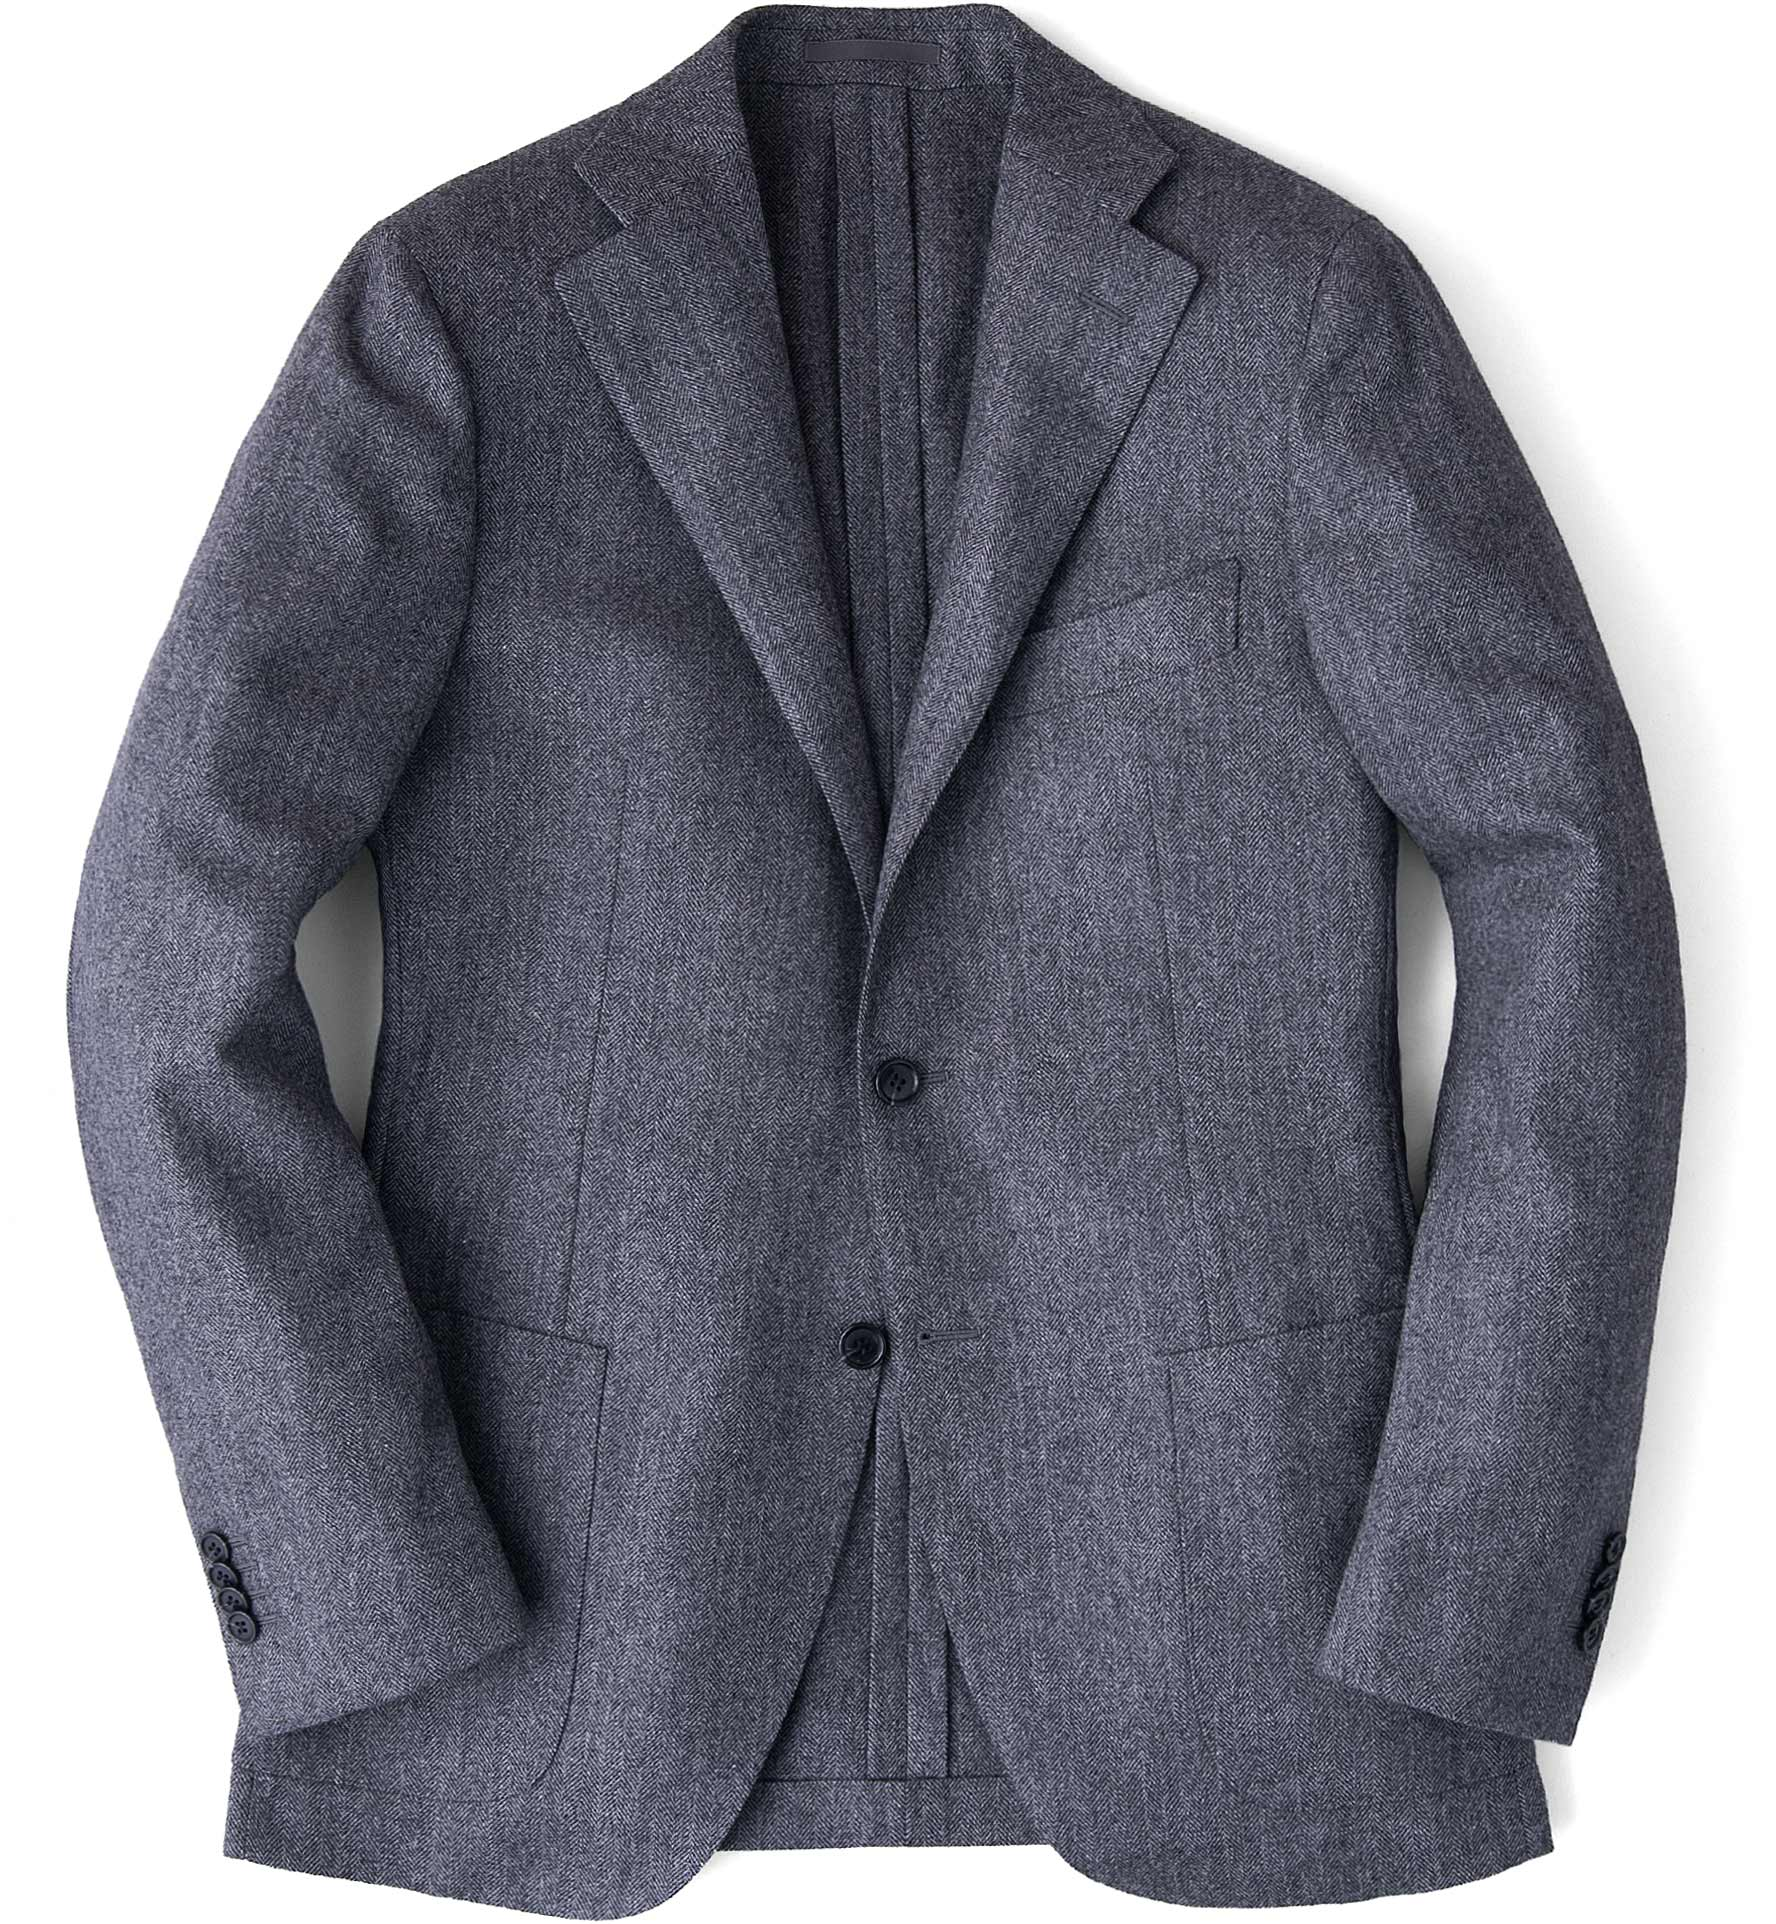 Zoom Image of Grey Wool Cashmere Herringbone Hudson Jacket